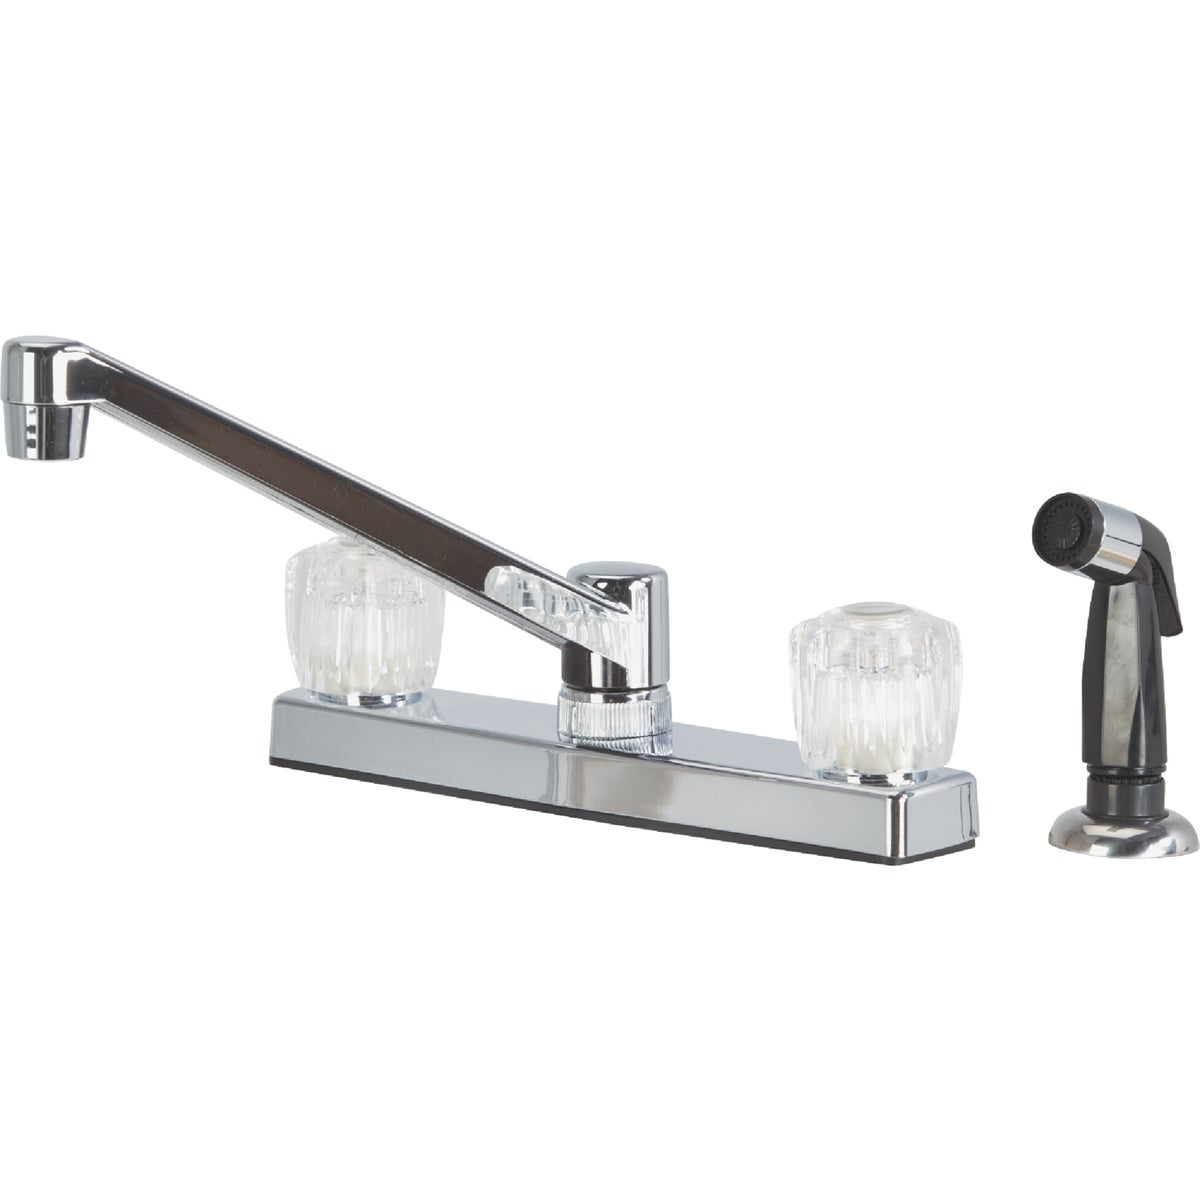 CHR FAUCET KIT W/SPRAY - F8ZZM3CP-JPB3 by Globe Union